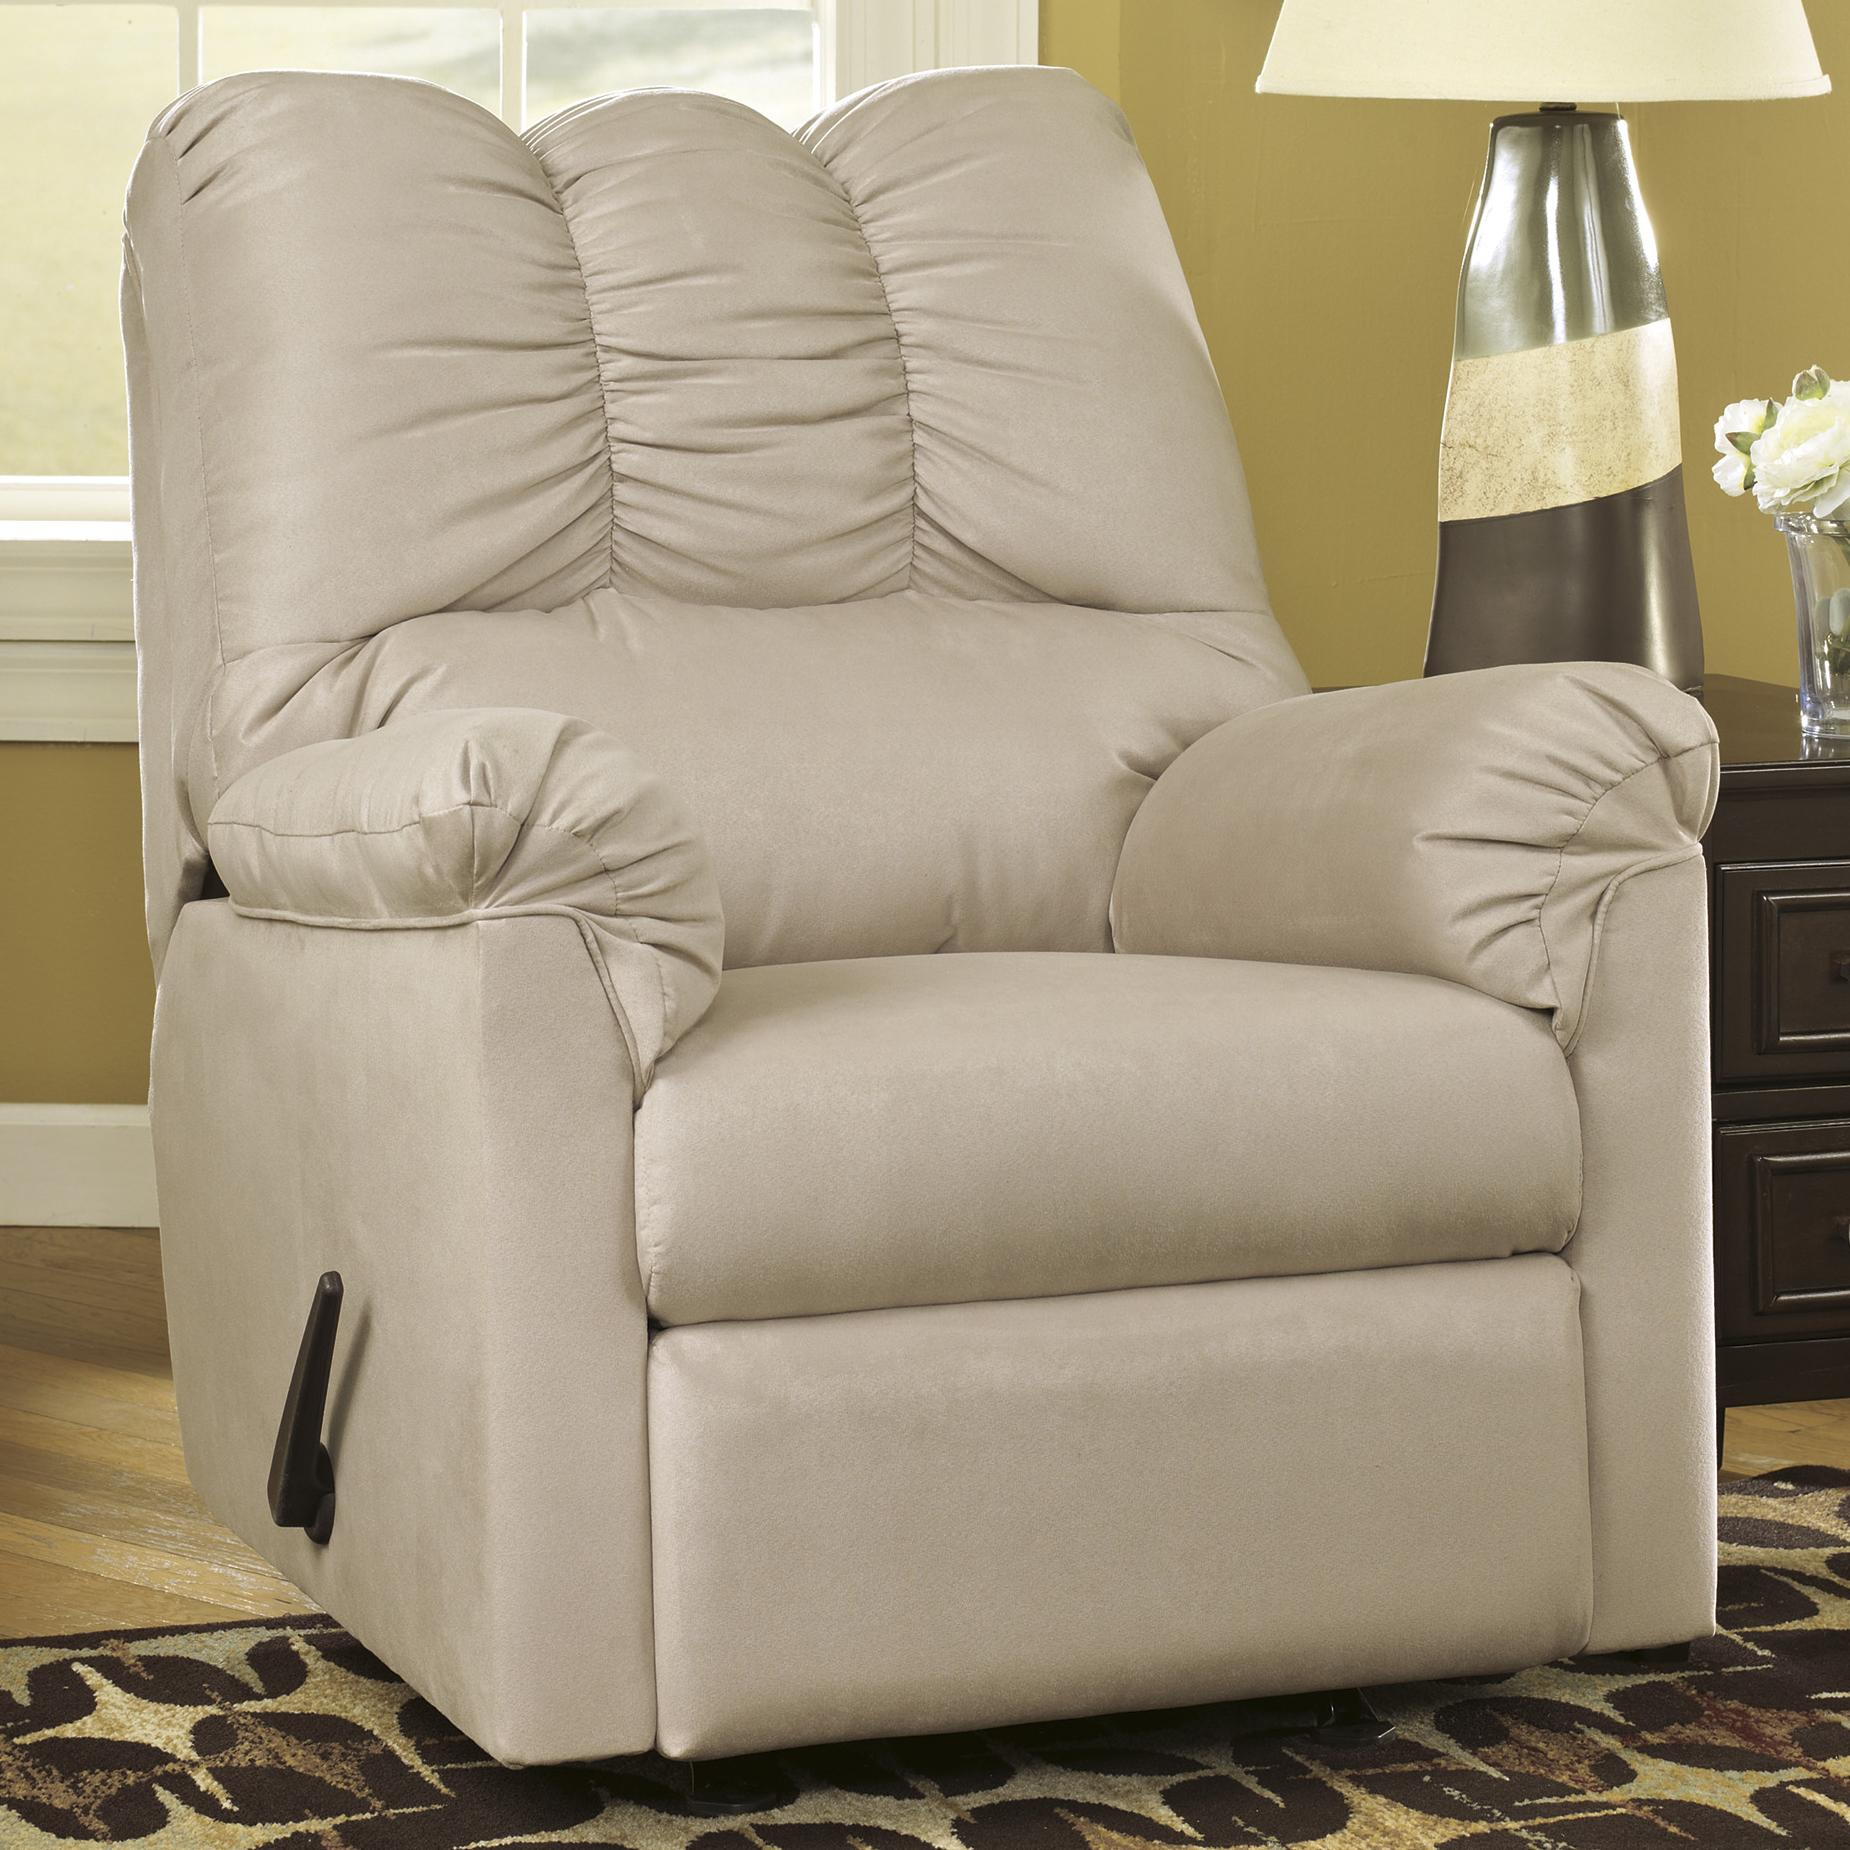 Ashley (Signature Design) Darcy - Stone Rocker Recliner - Item Number 7500025 : johnny janosik recliners - islam-shia.org